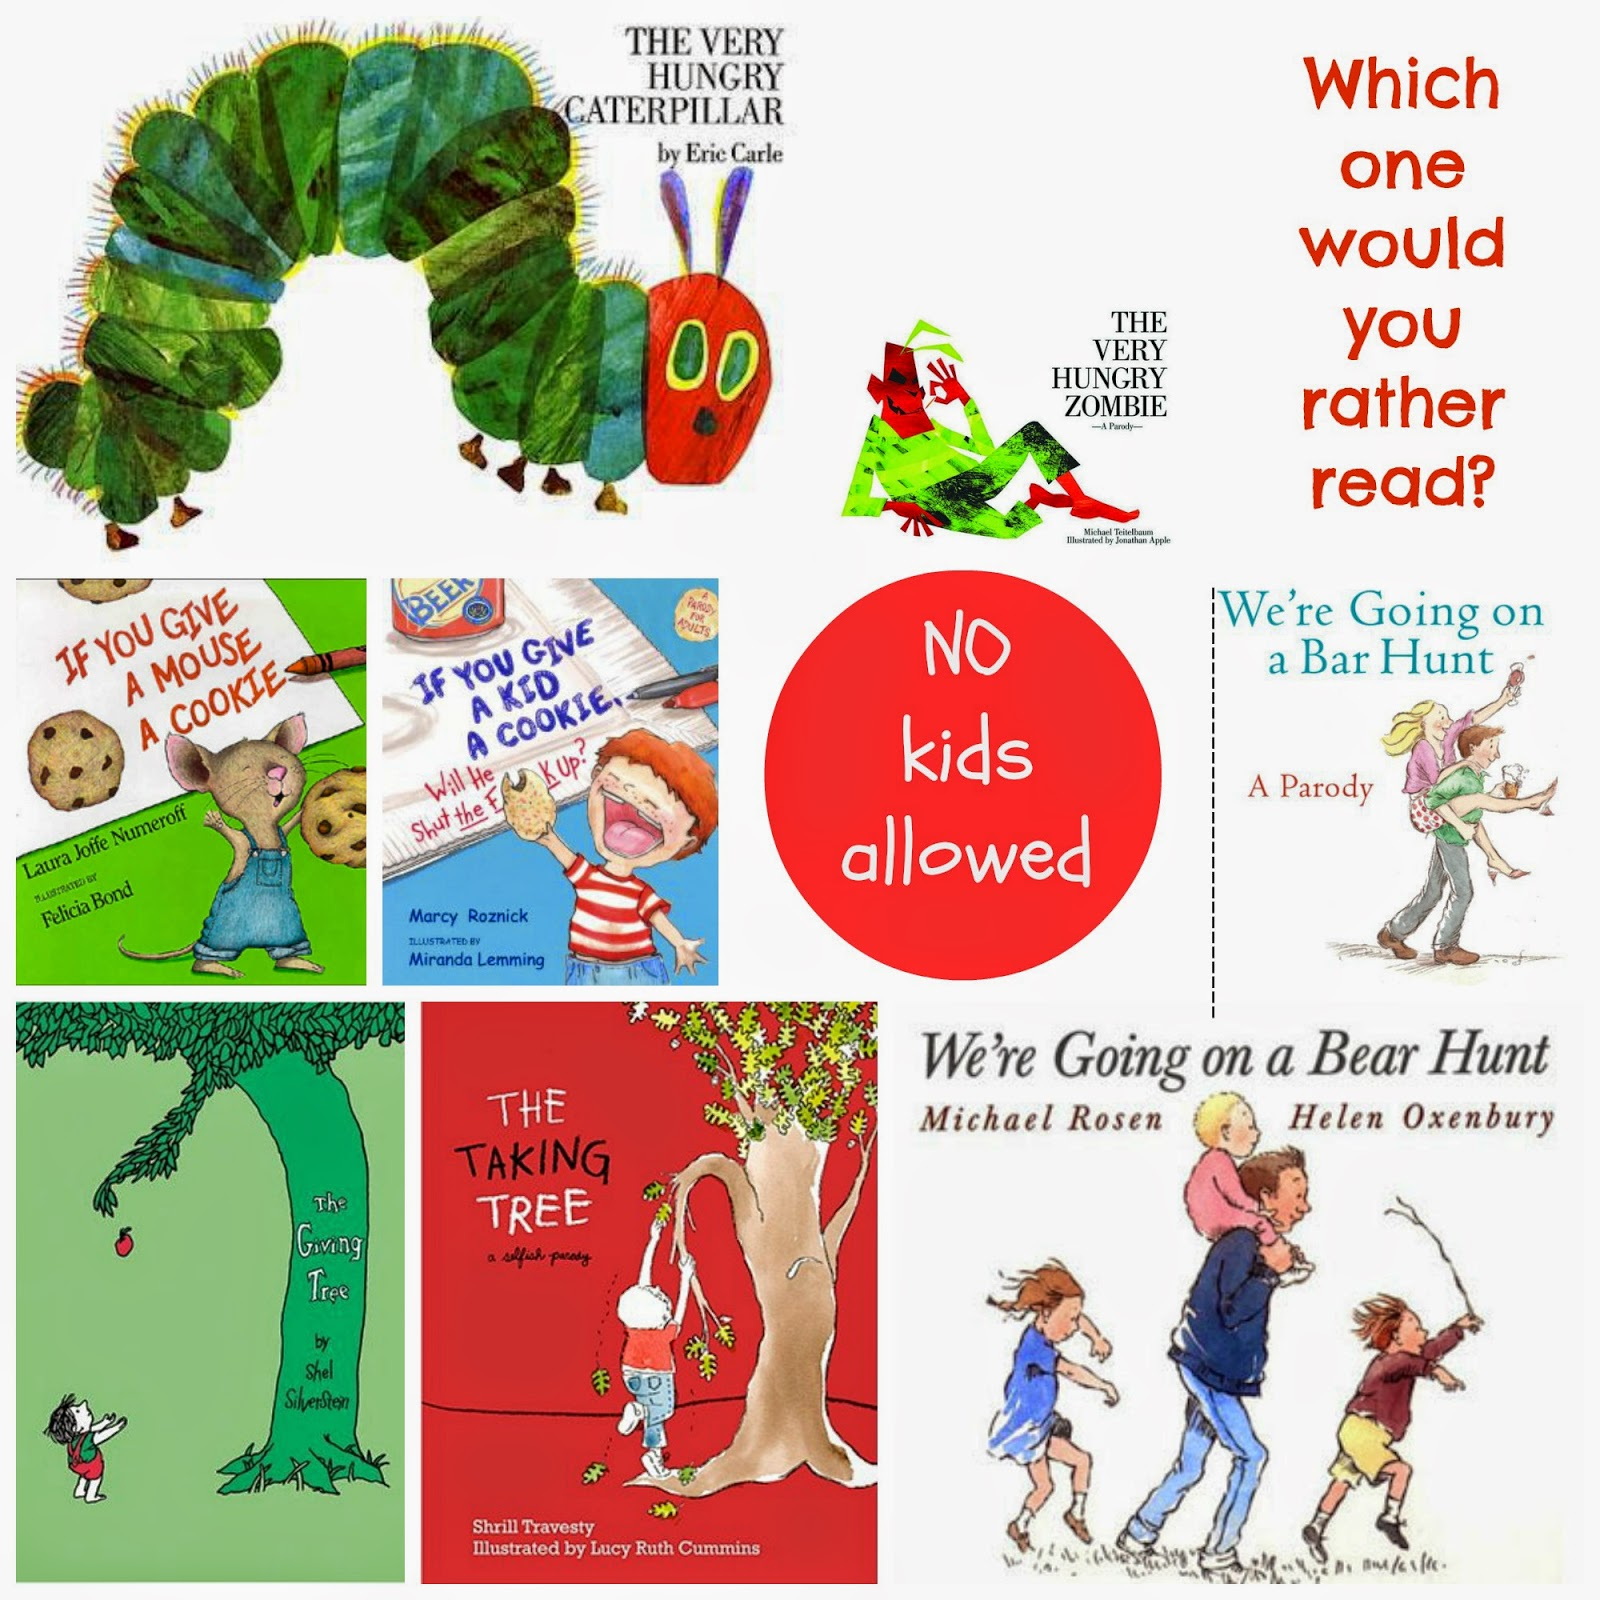 16 children's books that are really for adults | kid-ults | children's books for grown-ups | stories | book club | curious george | bear hunt hungry caterpillar | goodnight moon | classic kids books | parodies of kids books | humour | adult books | children's lib ray | h is for hummus | prada | runaway bunny | nursery books | story time | books | library | adult books parody of kids books | mamasVIb | sunday night book club